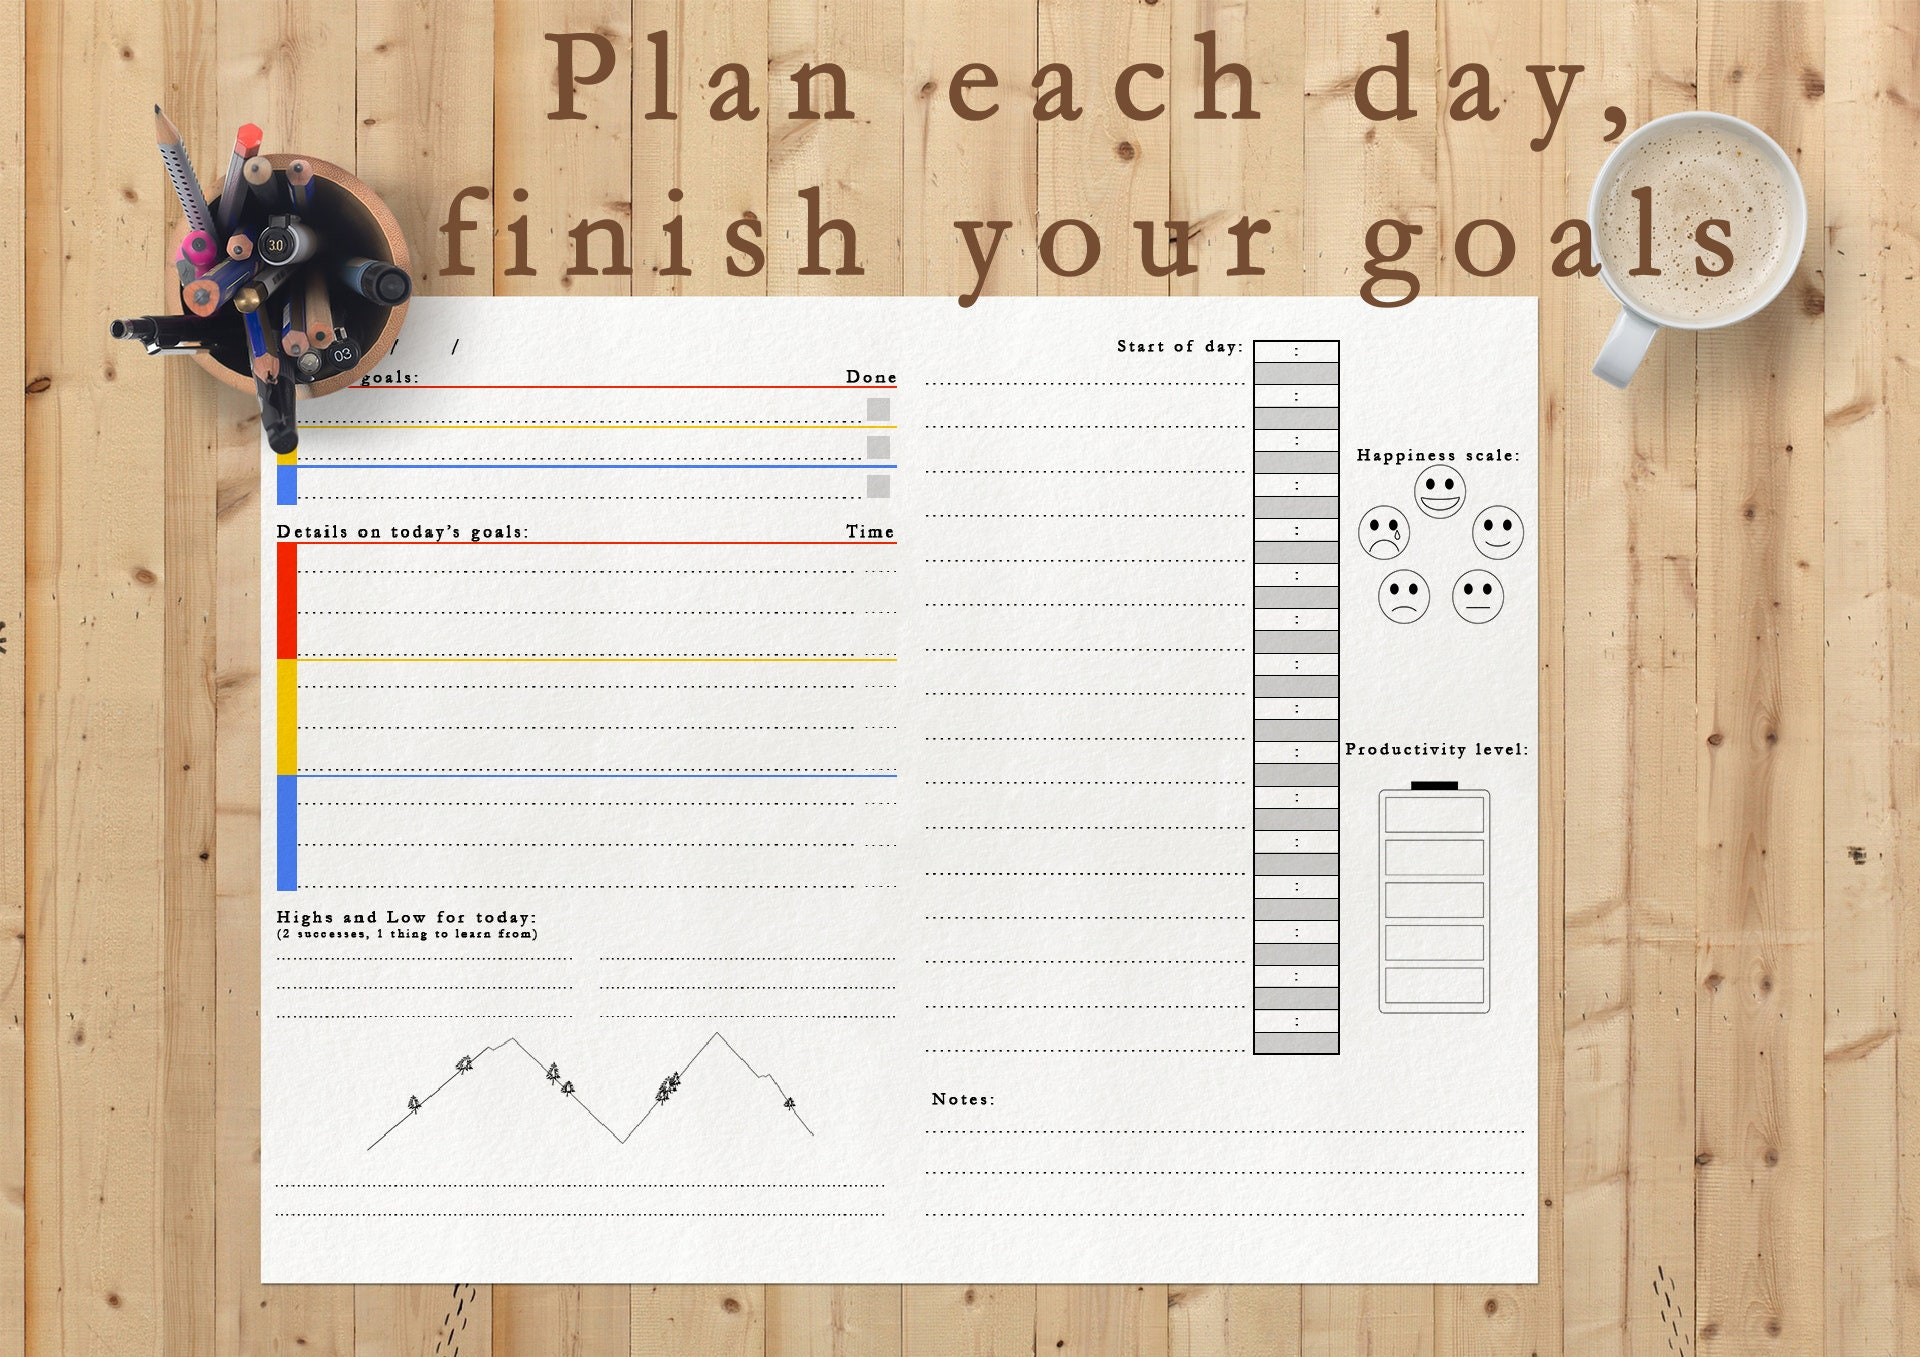 image about Full Focus Planner Pdf called Reason planner undated - printable PDF obtain